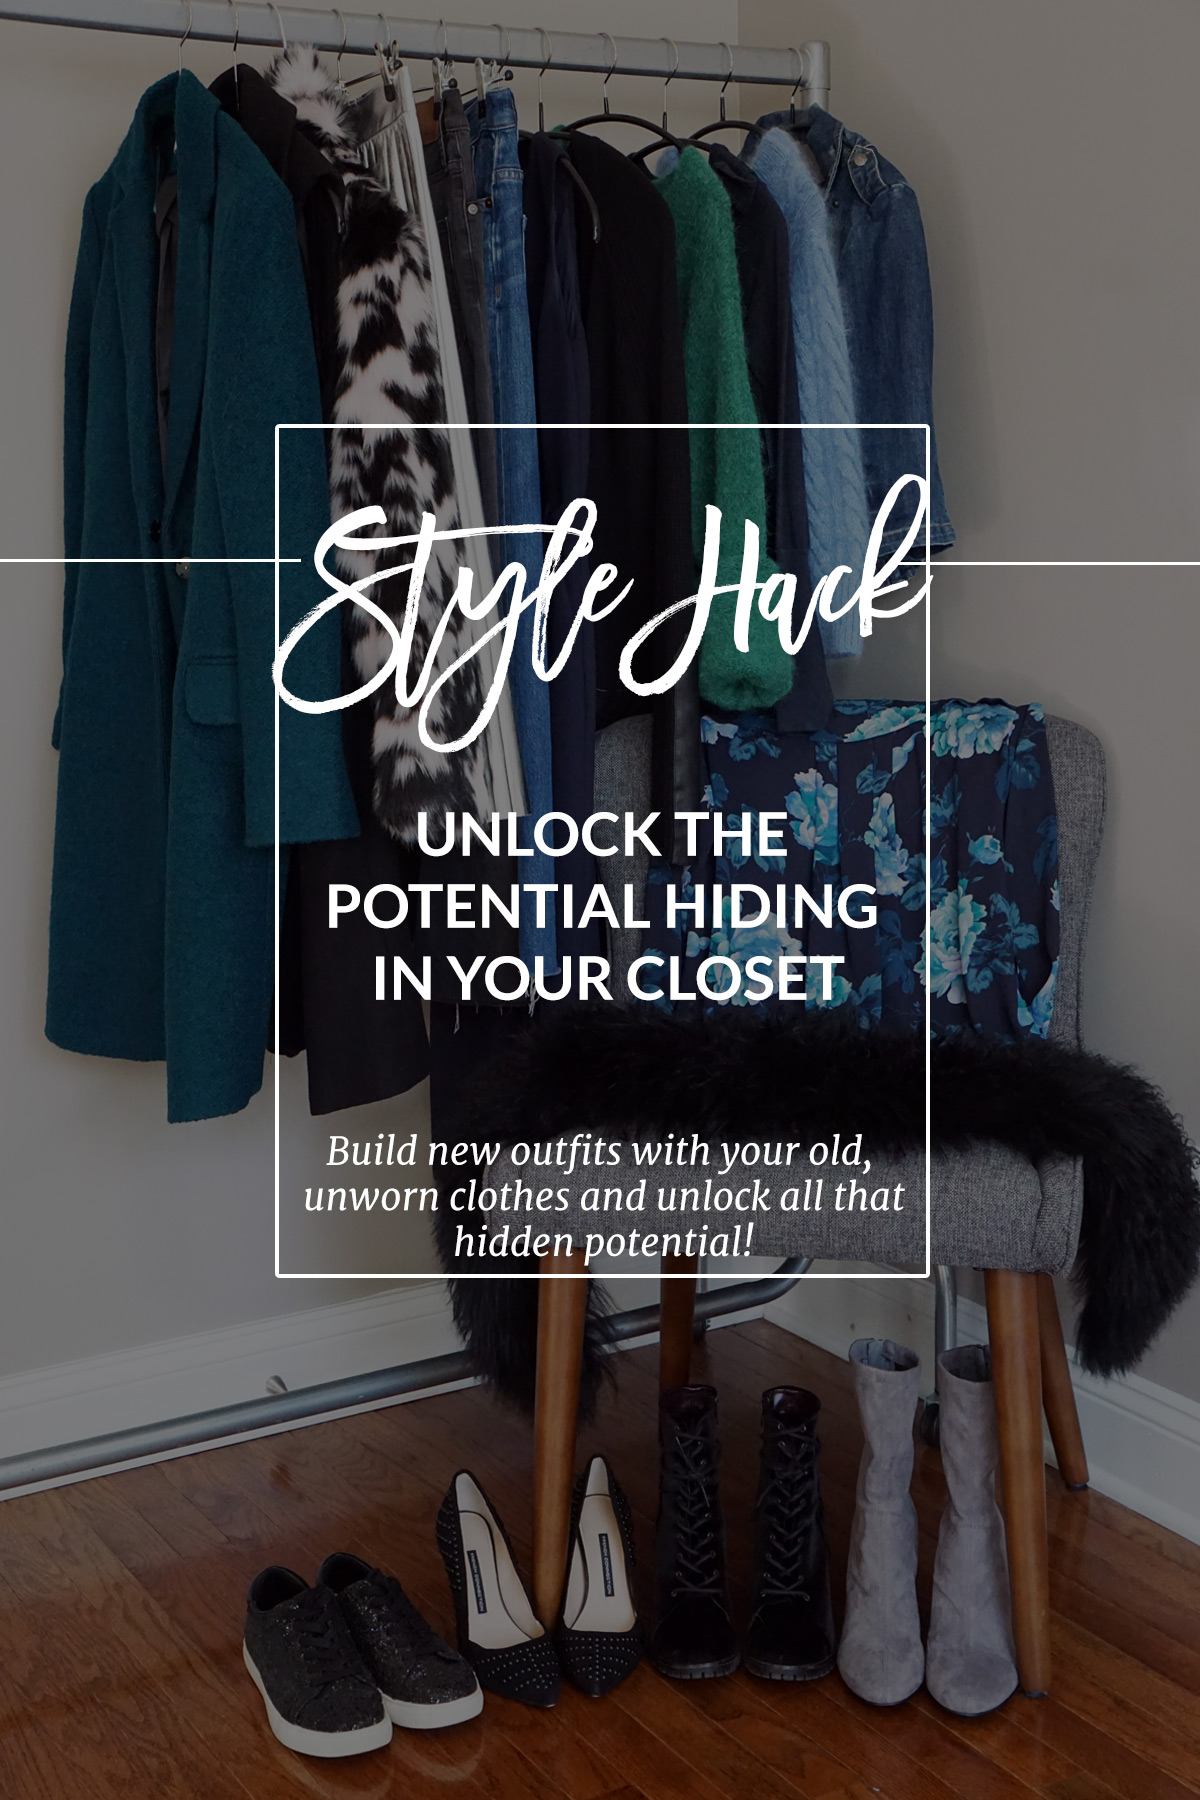 How To Unlock The Potential Hanging Inside Your Closet And Build New  Outfits With Old Clothes